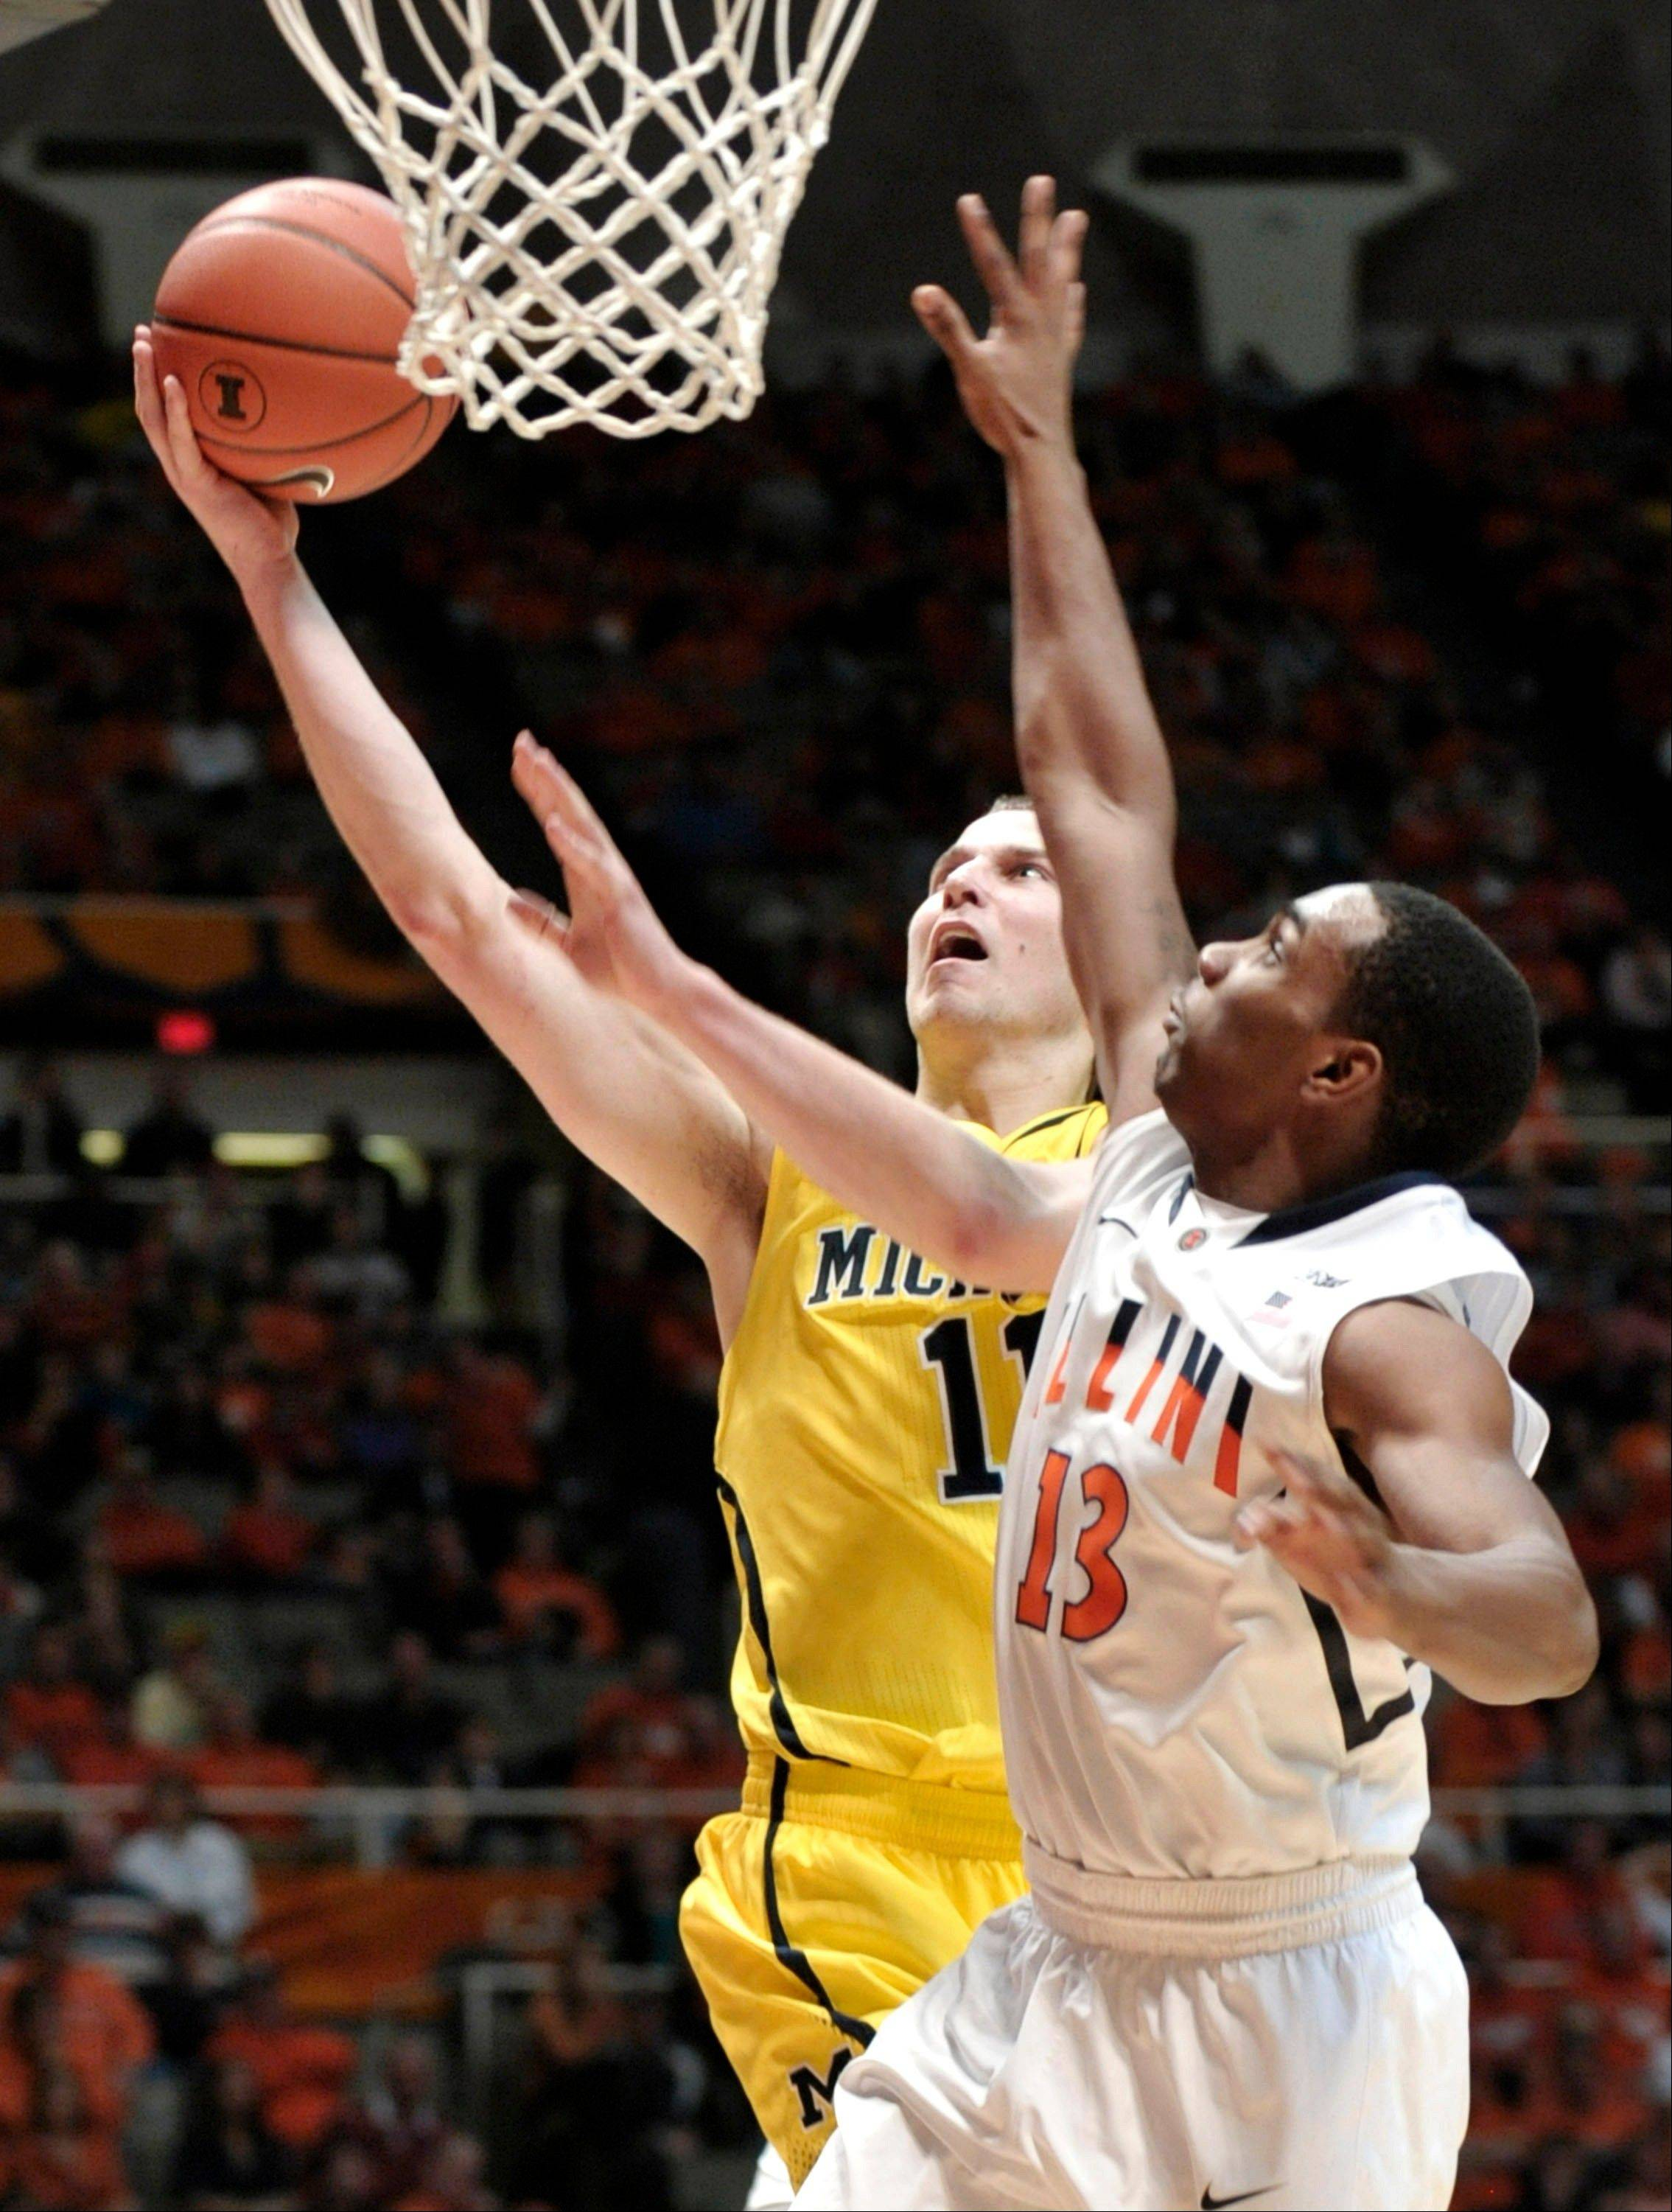 Michigan's Nik Stauskas (11) drives to the basket against Illinois' Tracy Abrams (13) during the second half of their NCAA college basketball game, Sunday, Jan. 27, 2013, in Champaign, Ill. Michigan won 74-60.